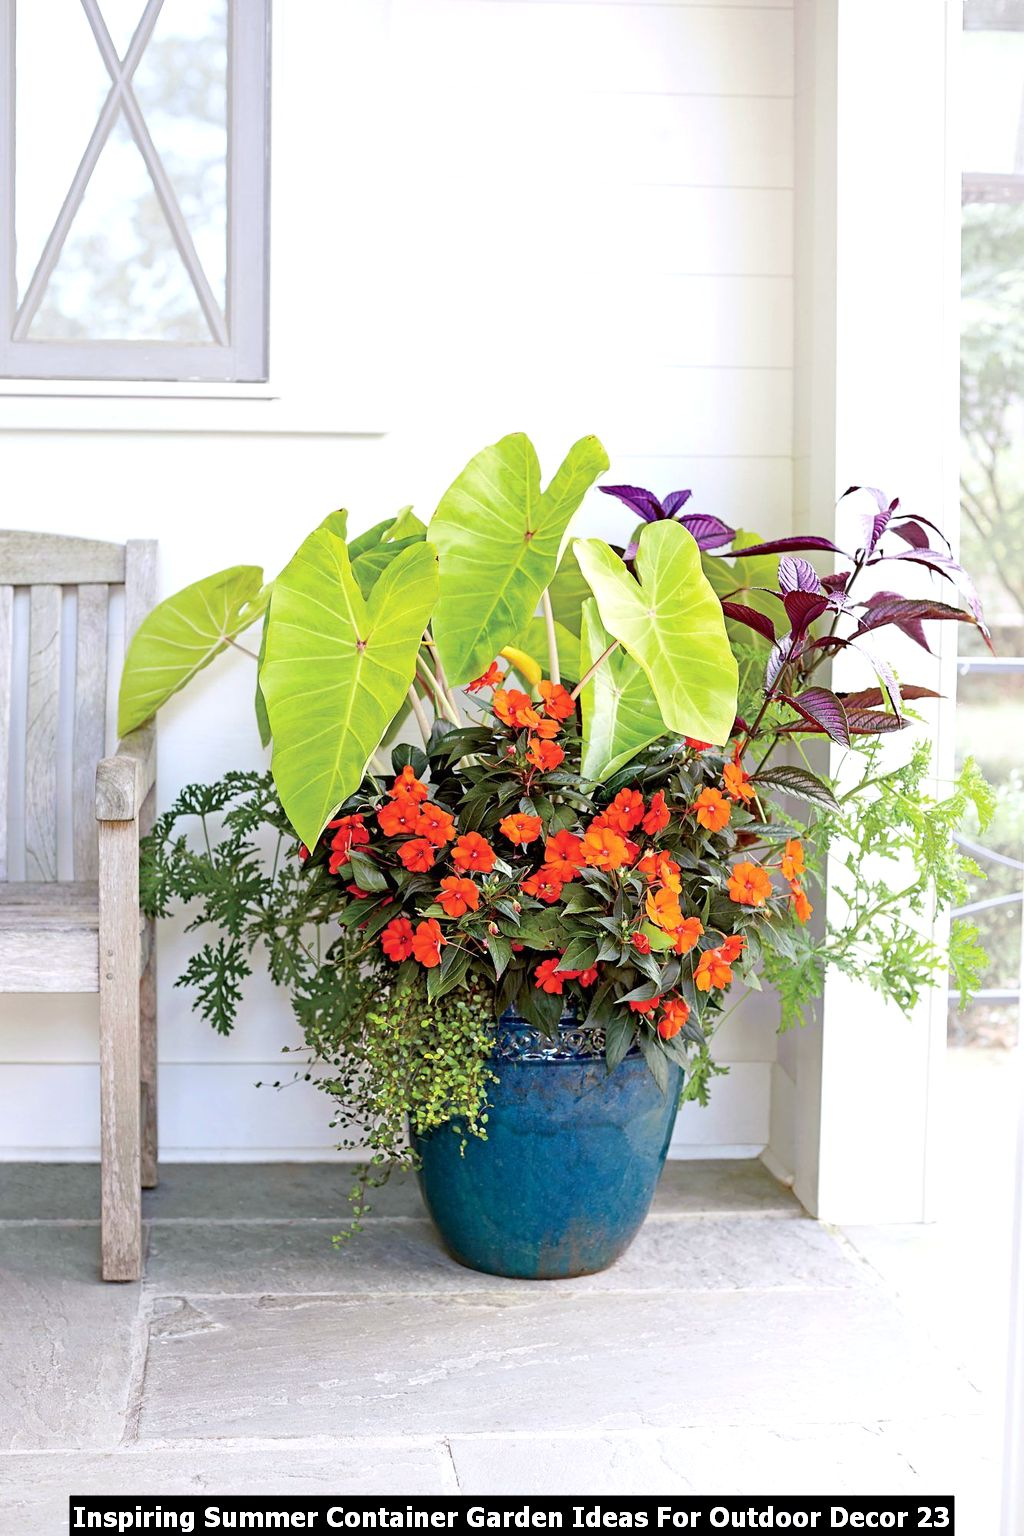 Inspiring Summer Container Garden Ideas For Outdoor Decor 23